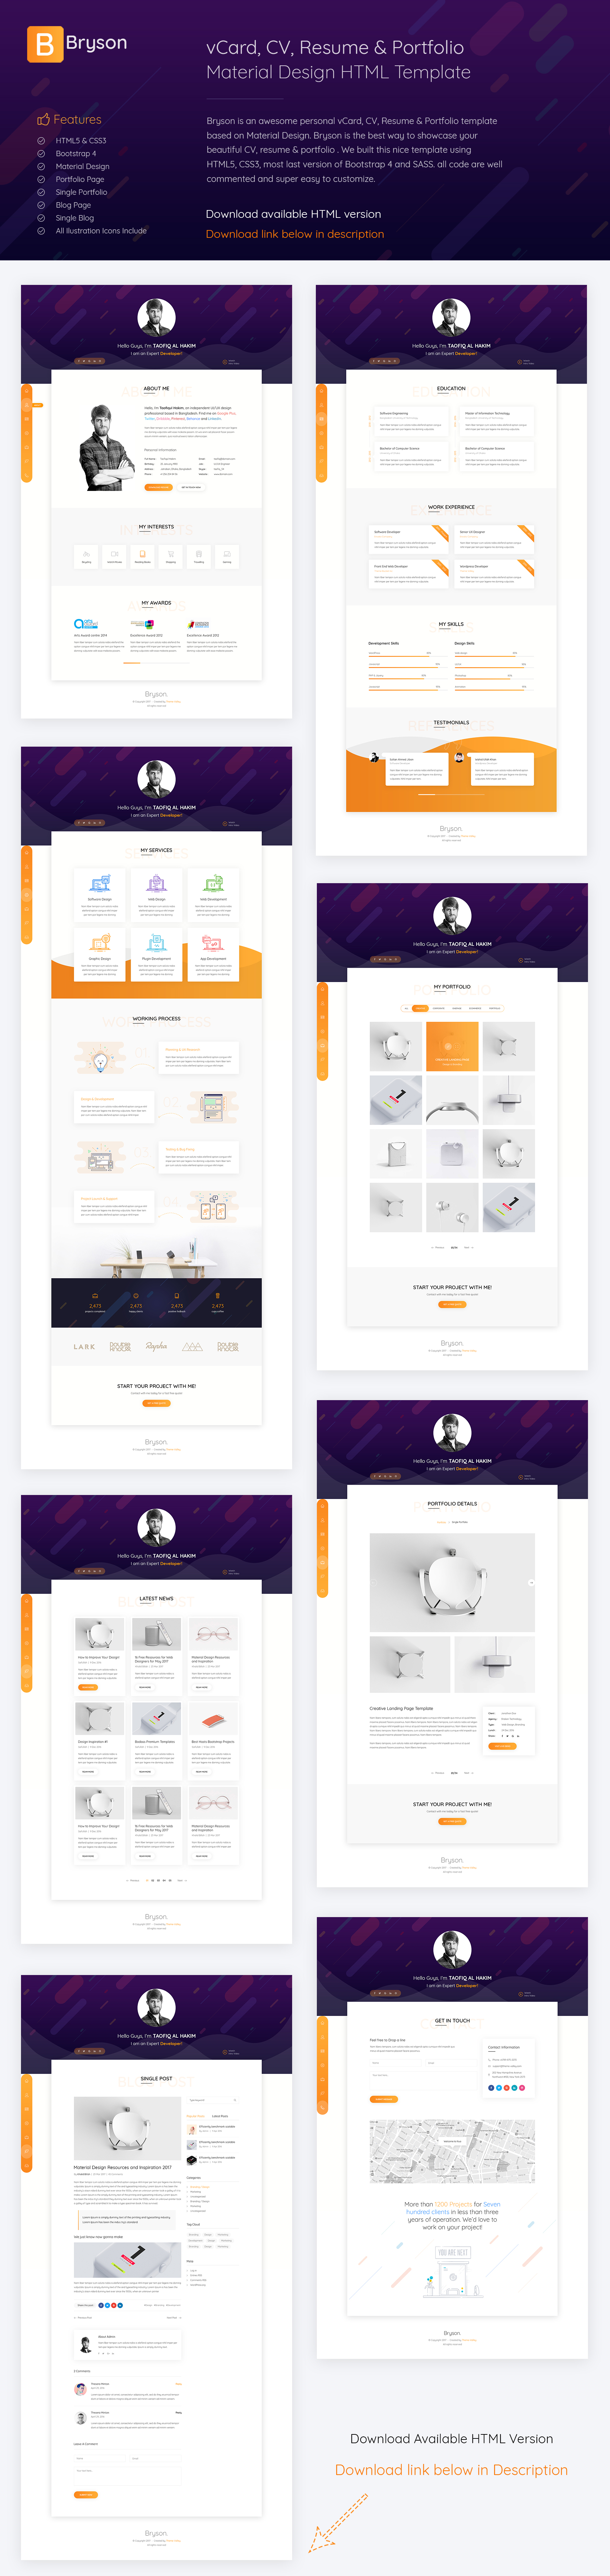 cv resume portfolio template by arahimdesign